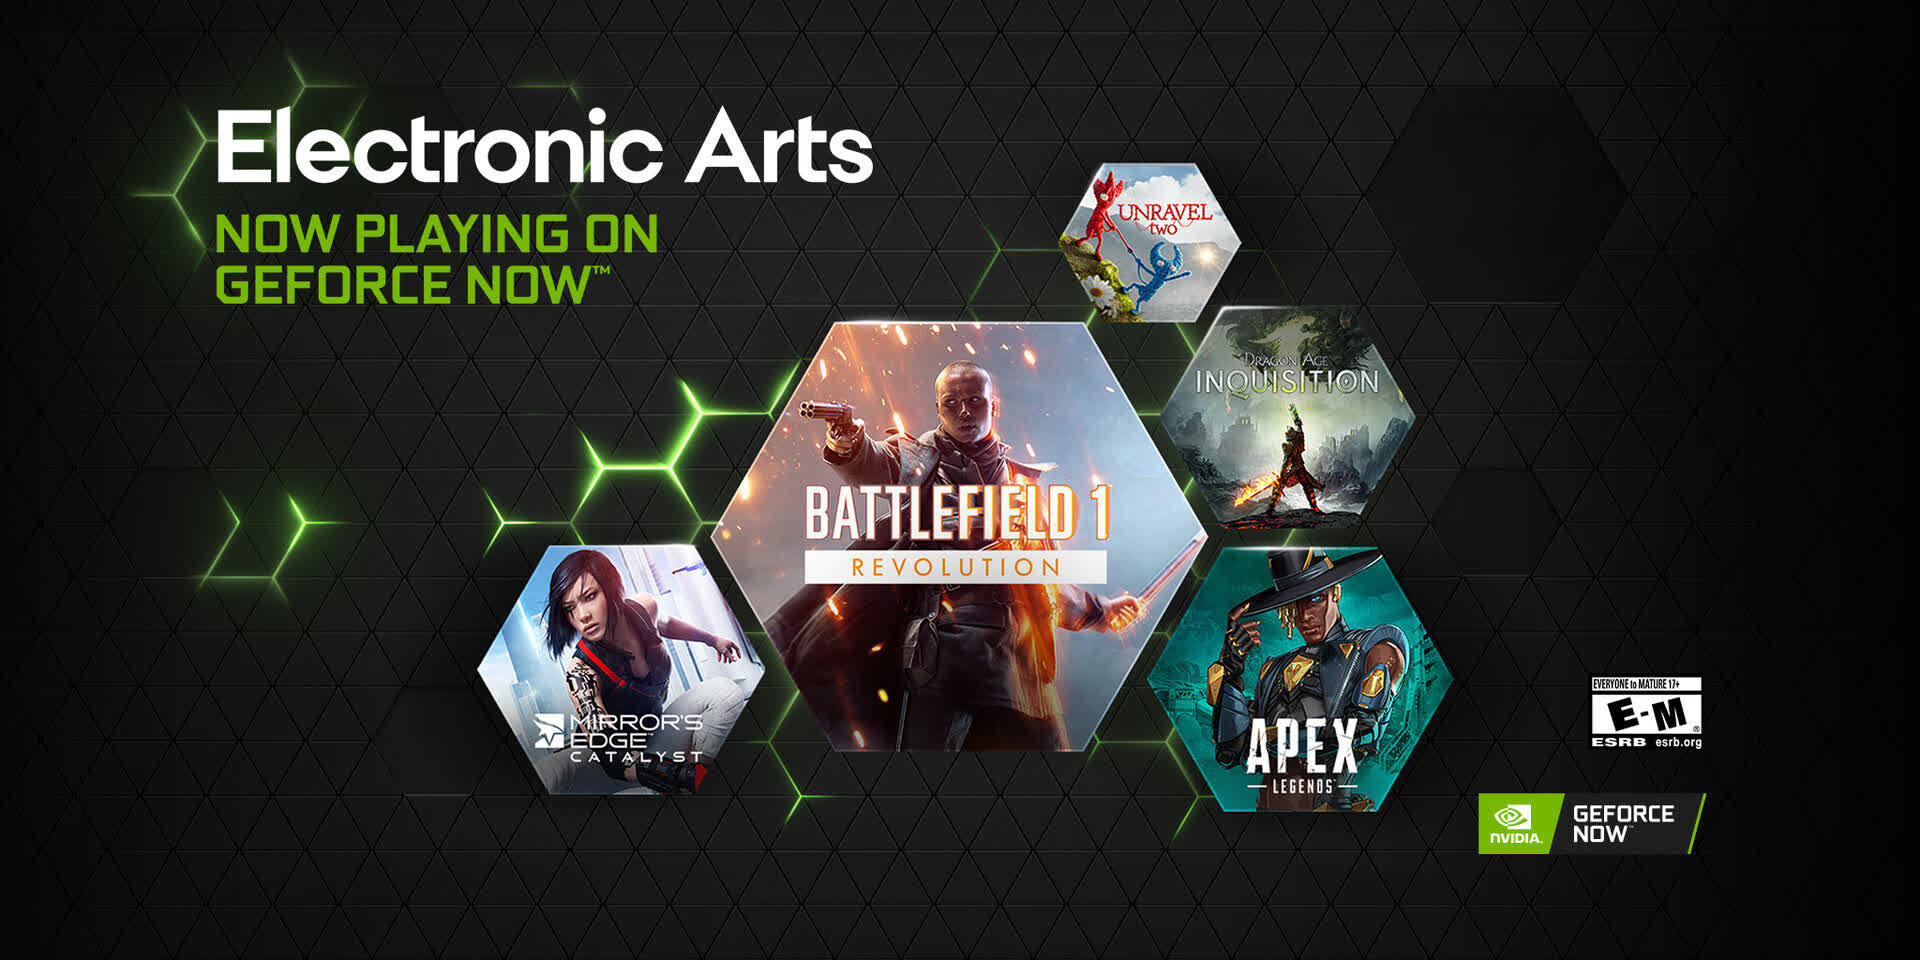 Nvidia GeForce Now game lineup is expanding with four Electronic Arts titles